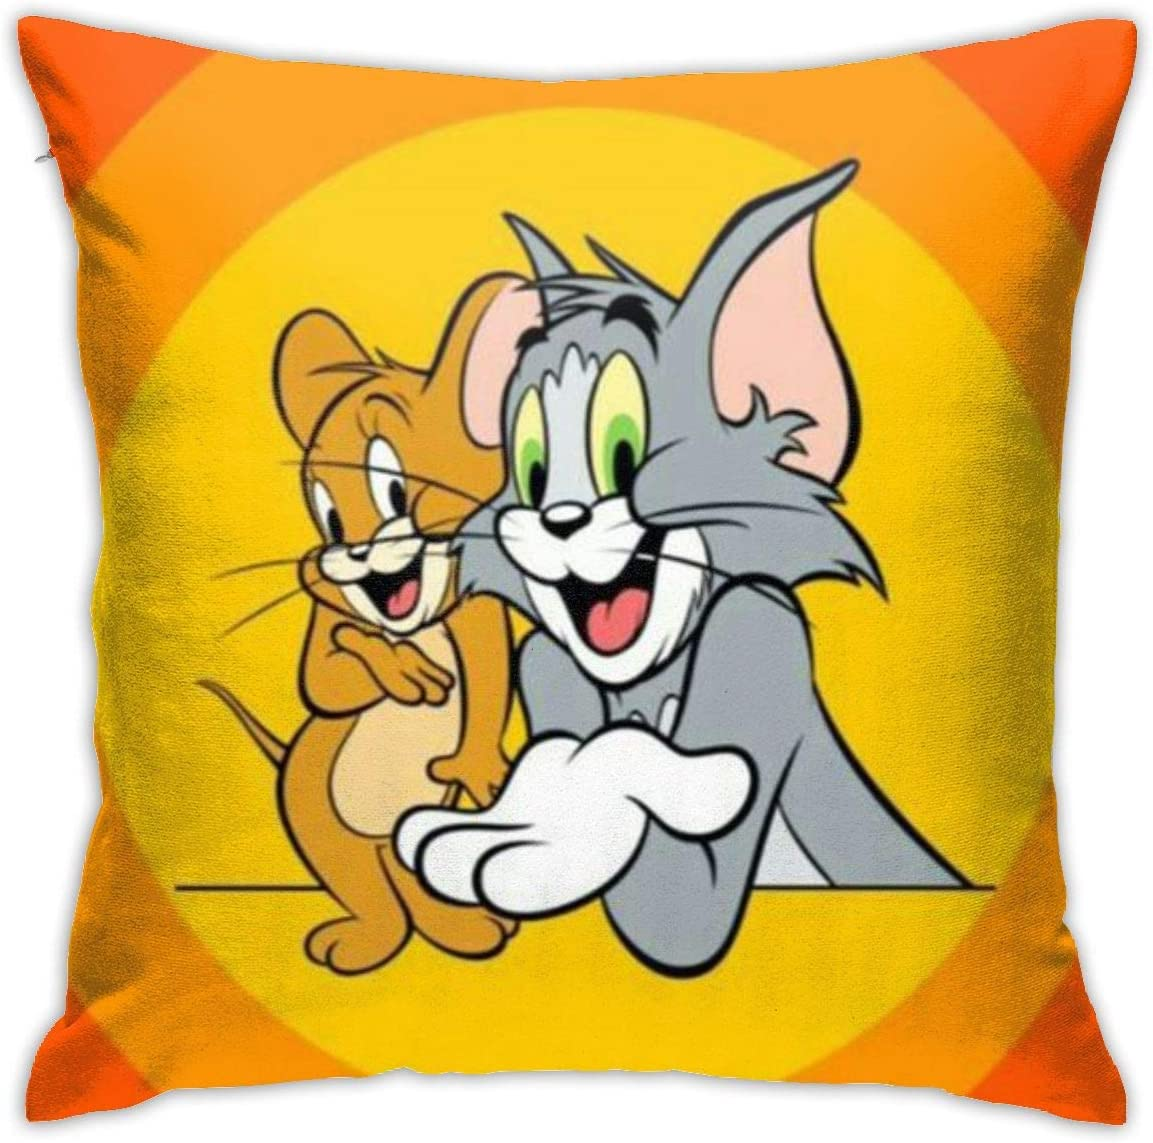 """JJSBFVB Throw Pillow Covers 18""""X 18""""inch- Tom and Jerry Fun-Square Shape Decorative Cushion Cover for Couch Sofa Pillow Set"""